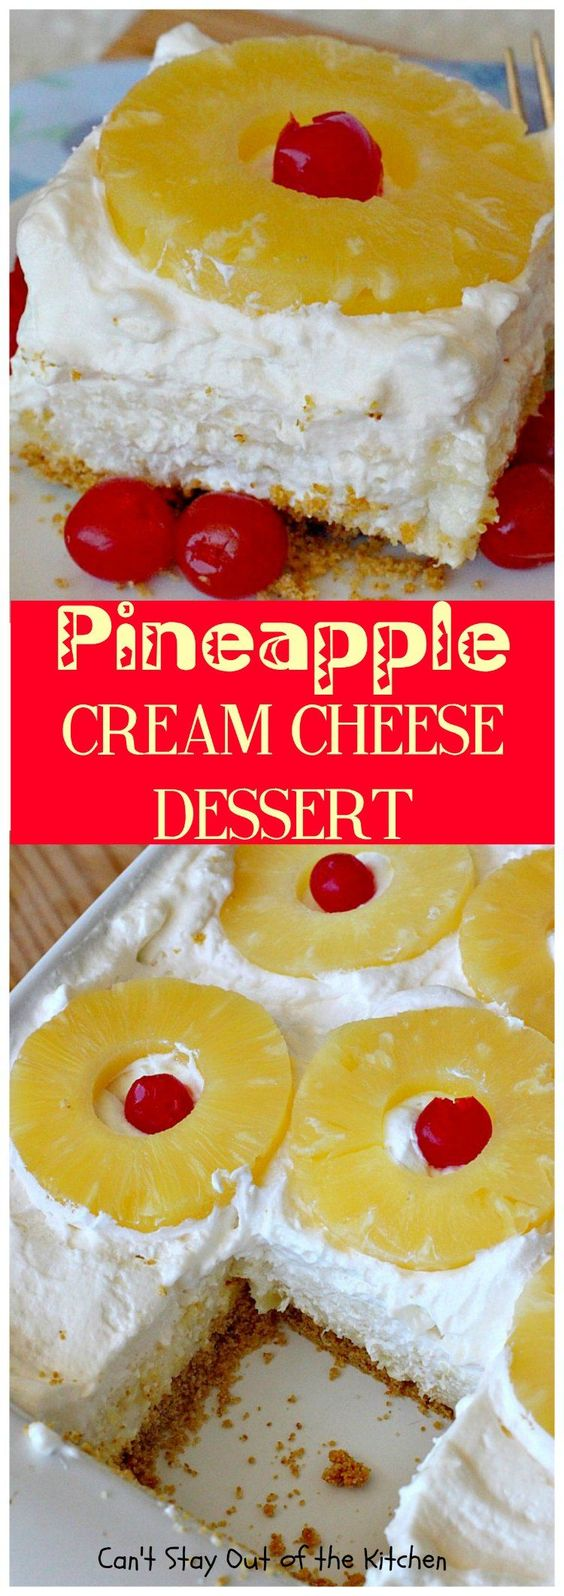 Pineapple Cream Cheese Dessert | Can't Stay Out of the Kitchen | fabulous…